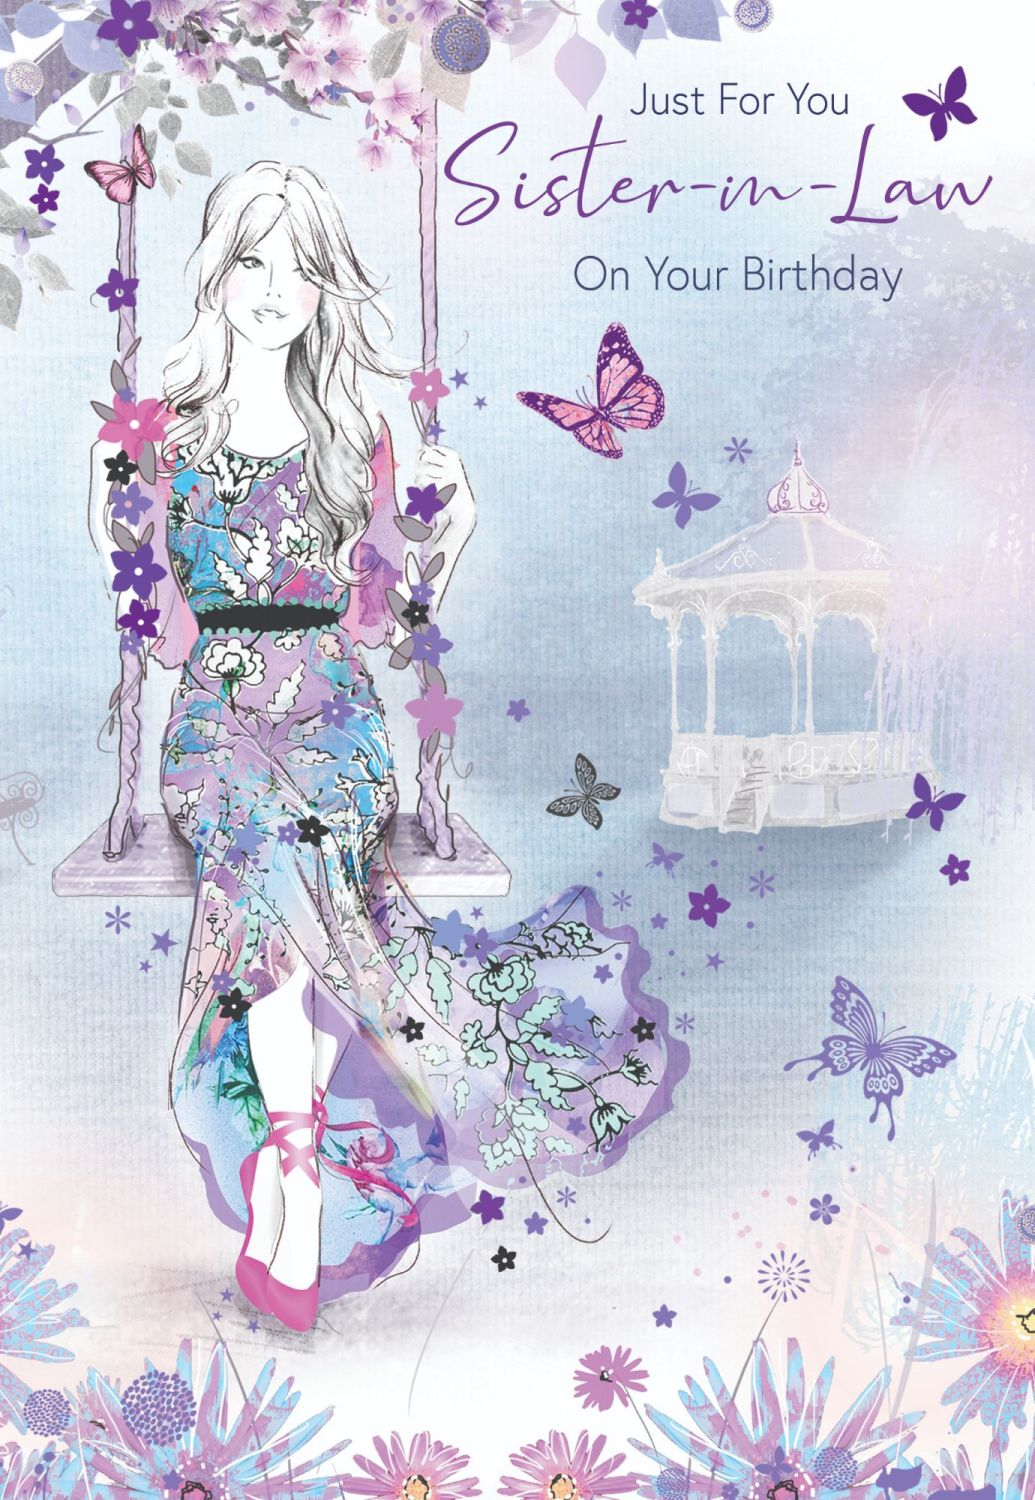 Sister In Law Birthday Cards - JUST For YOU - Pretty BIRTHDAY Card For SIST